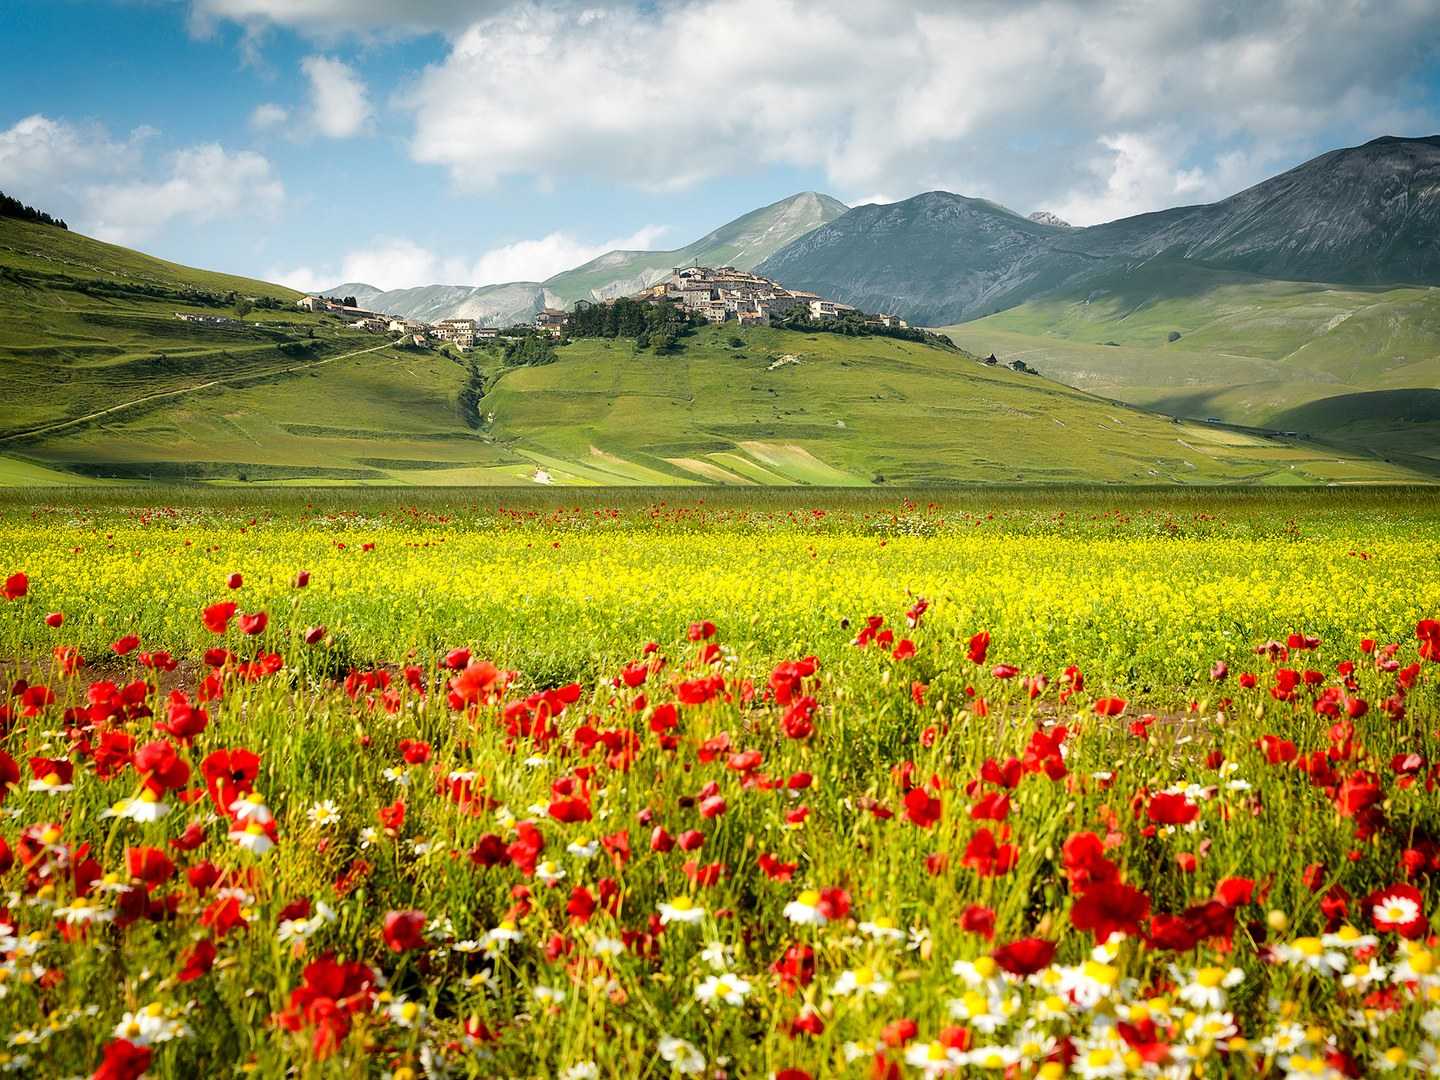 small-towns-italy-Castelluccio-cr-getty